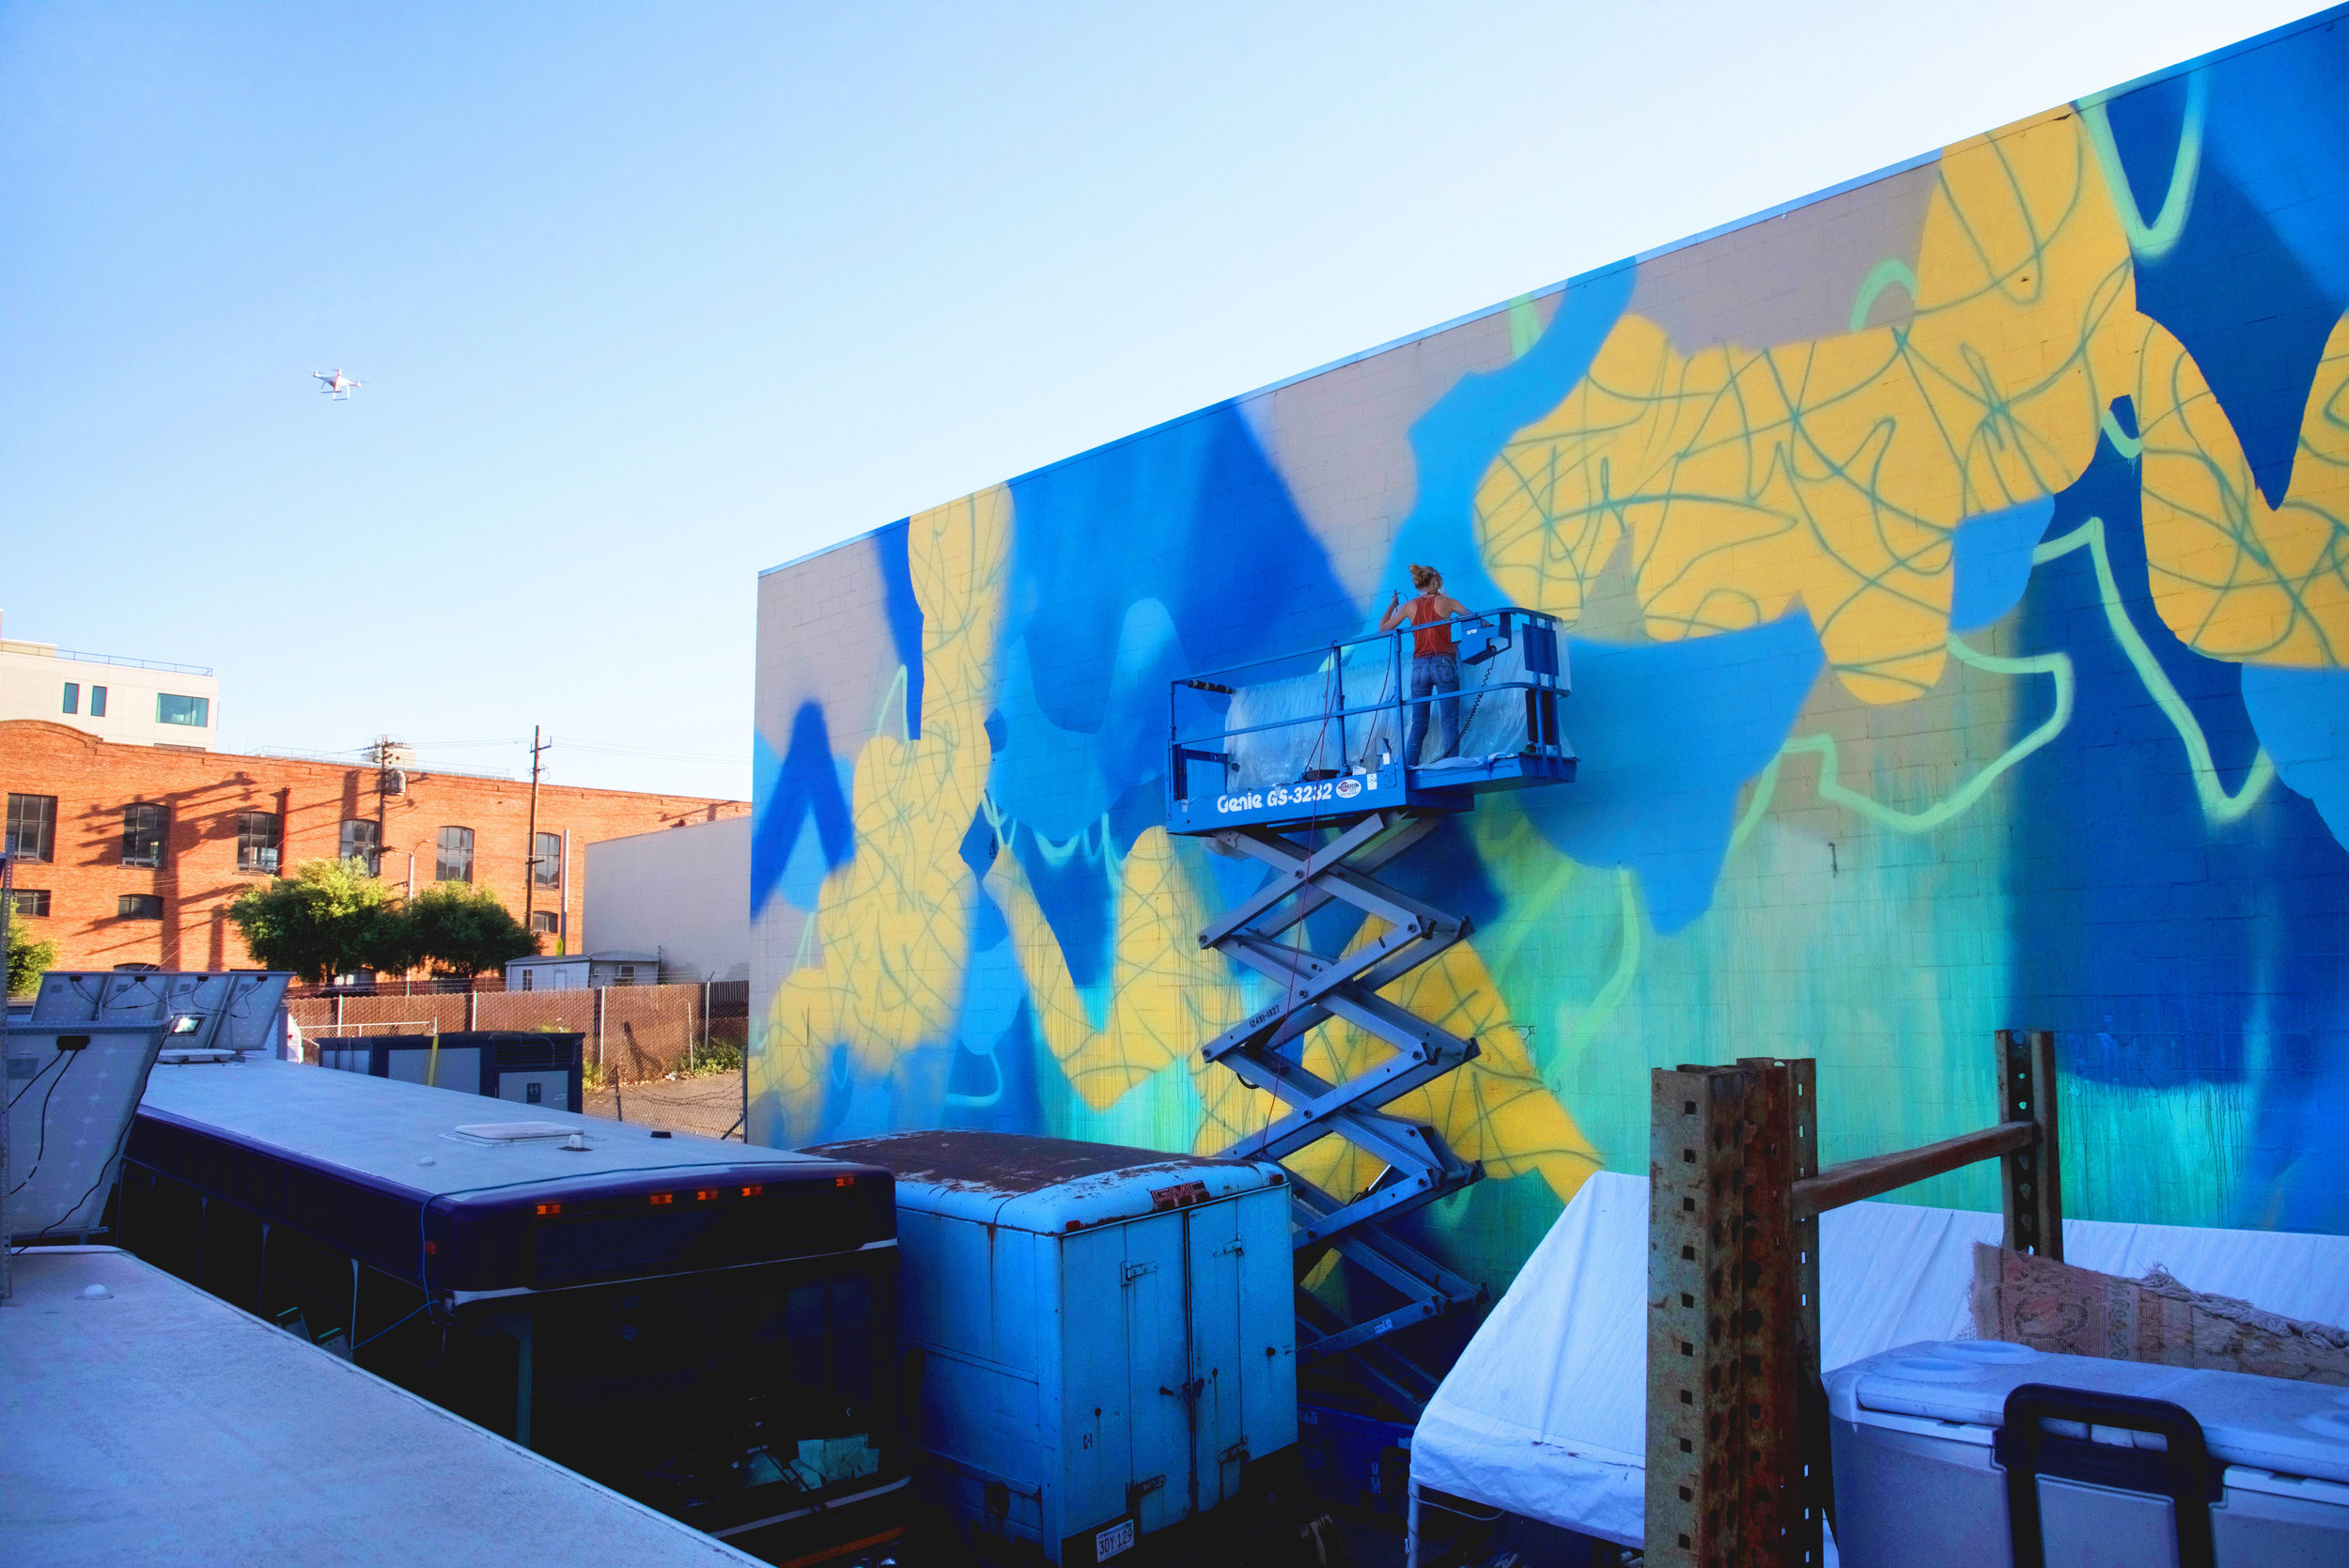 Overlook in Blue,  70 x 30 ft., Mural, 2017, Dogpatch, San Francisco, California